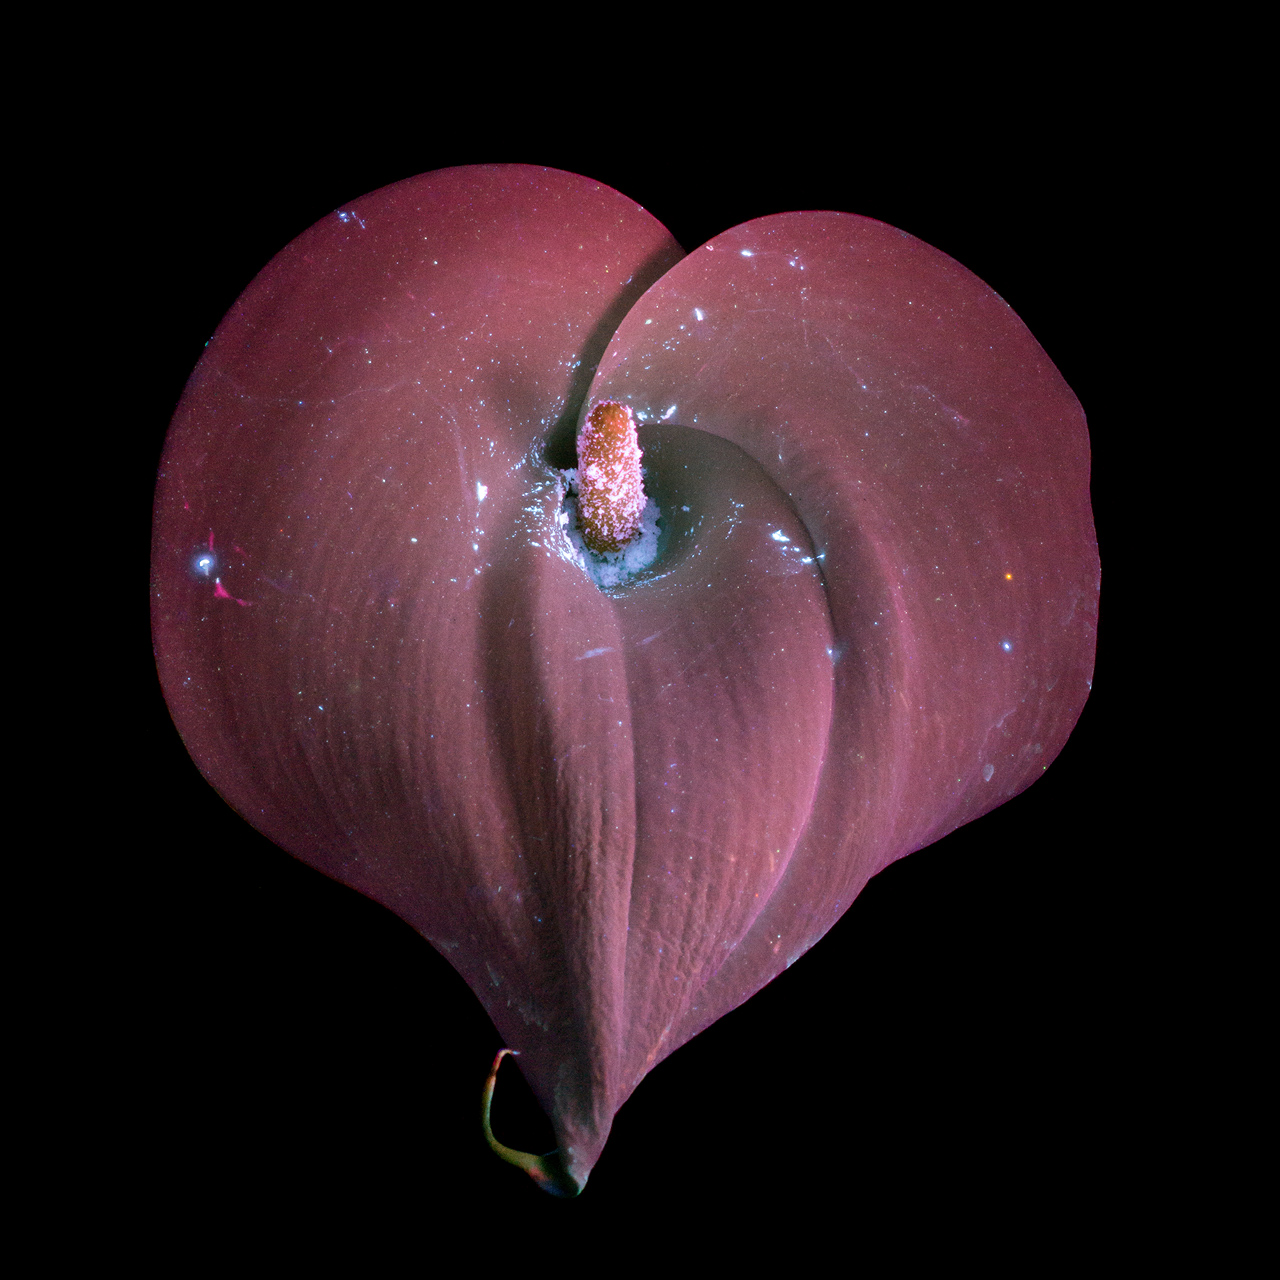 http://i2.wp.com/www.cpburrows.com/wp-content/uploads/2016/04/Calla-Lily-Heart-small.jpg?fit=1280%2C1280